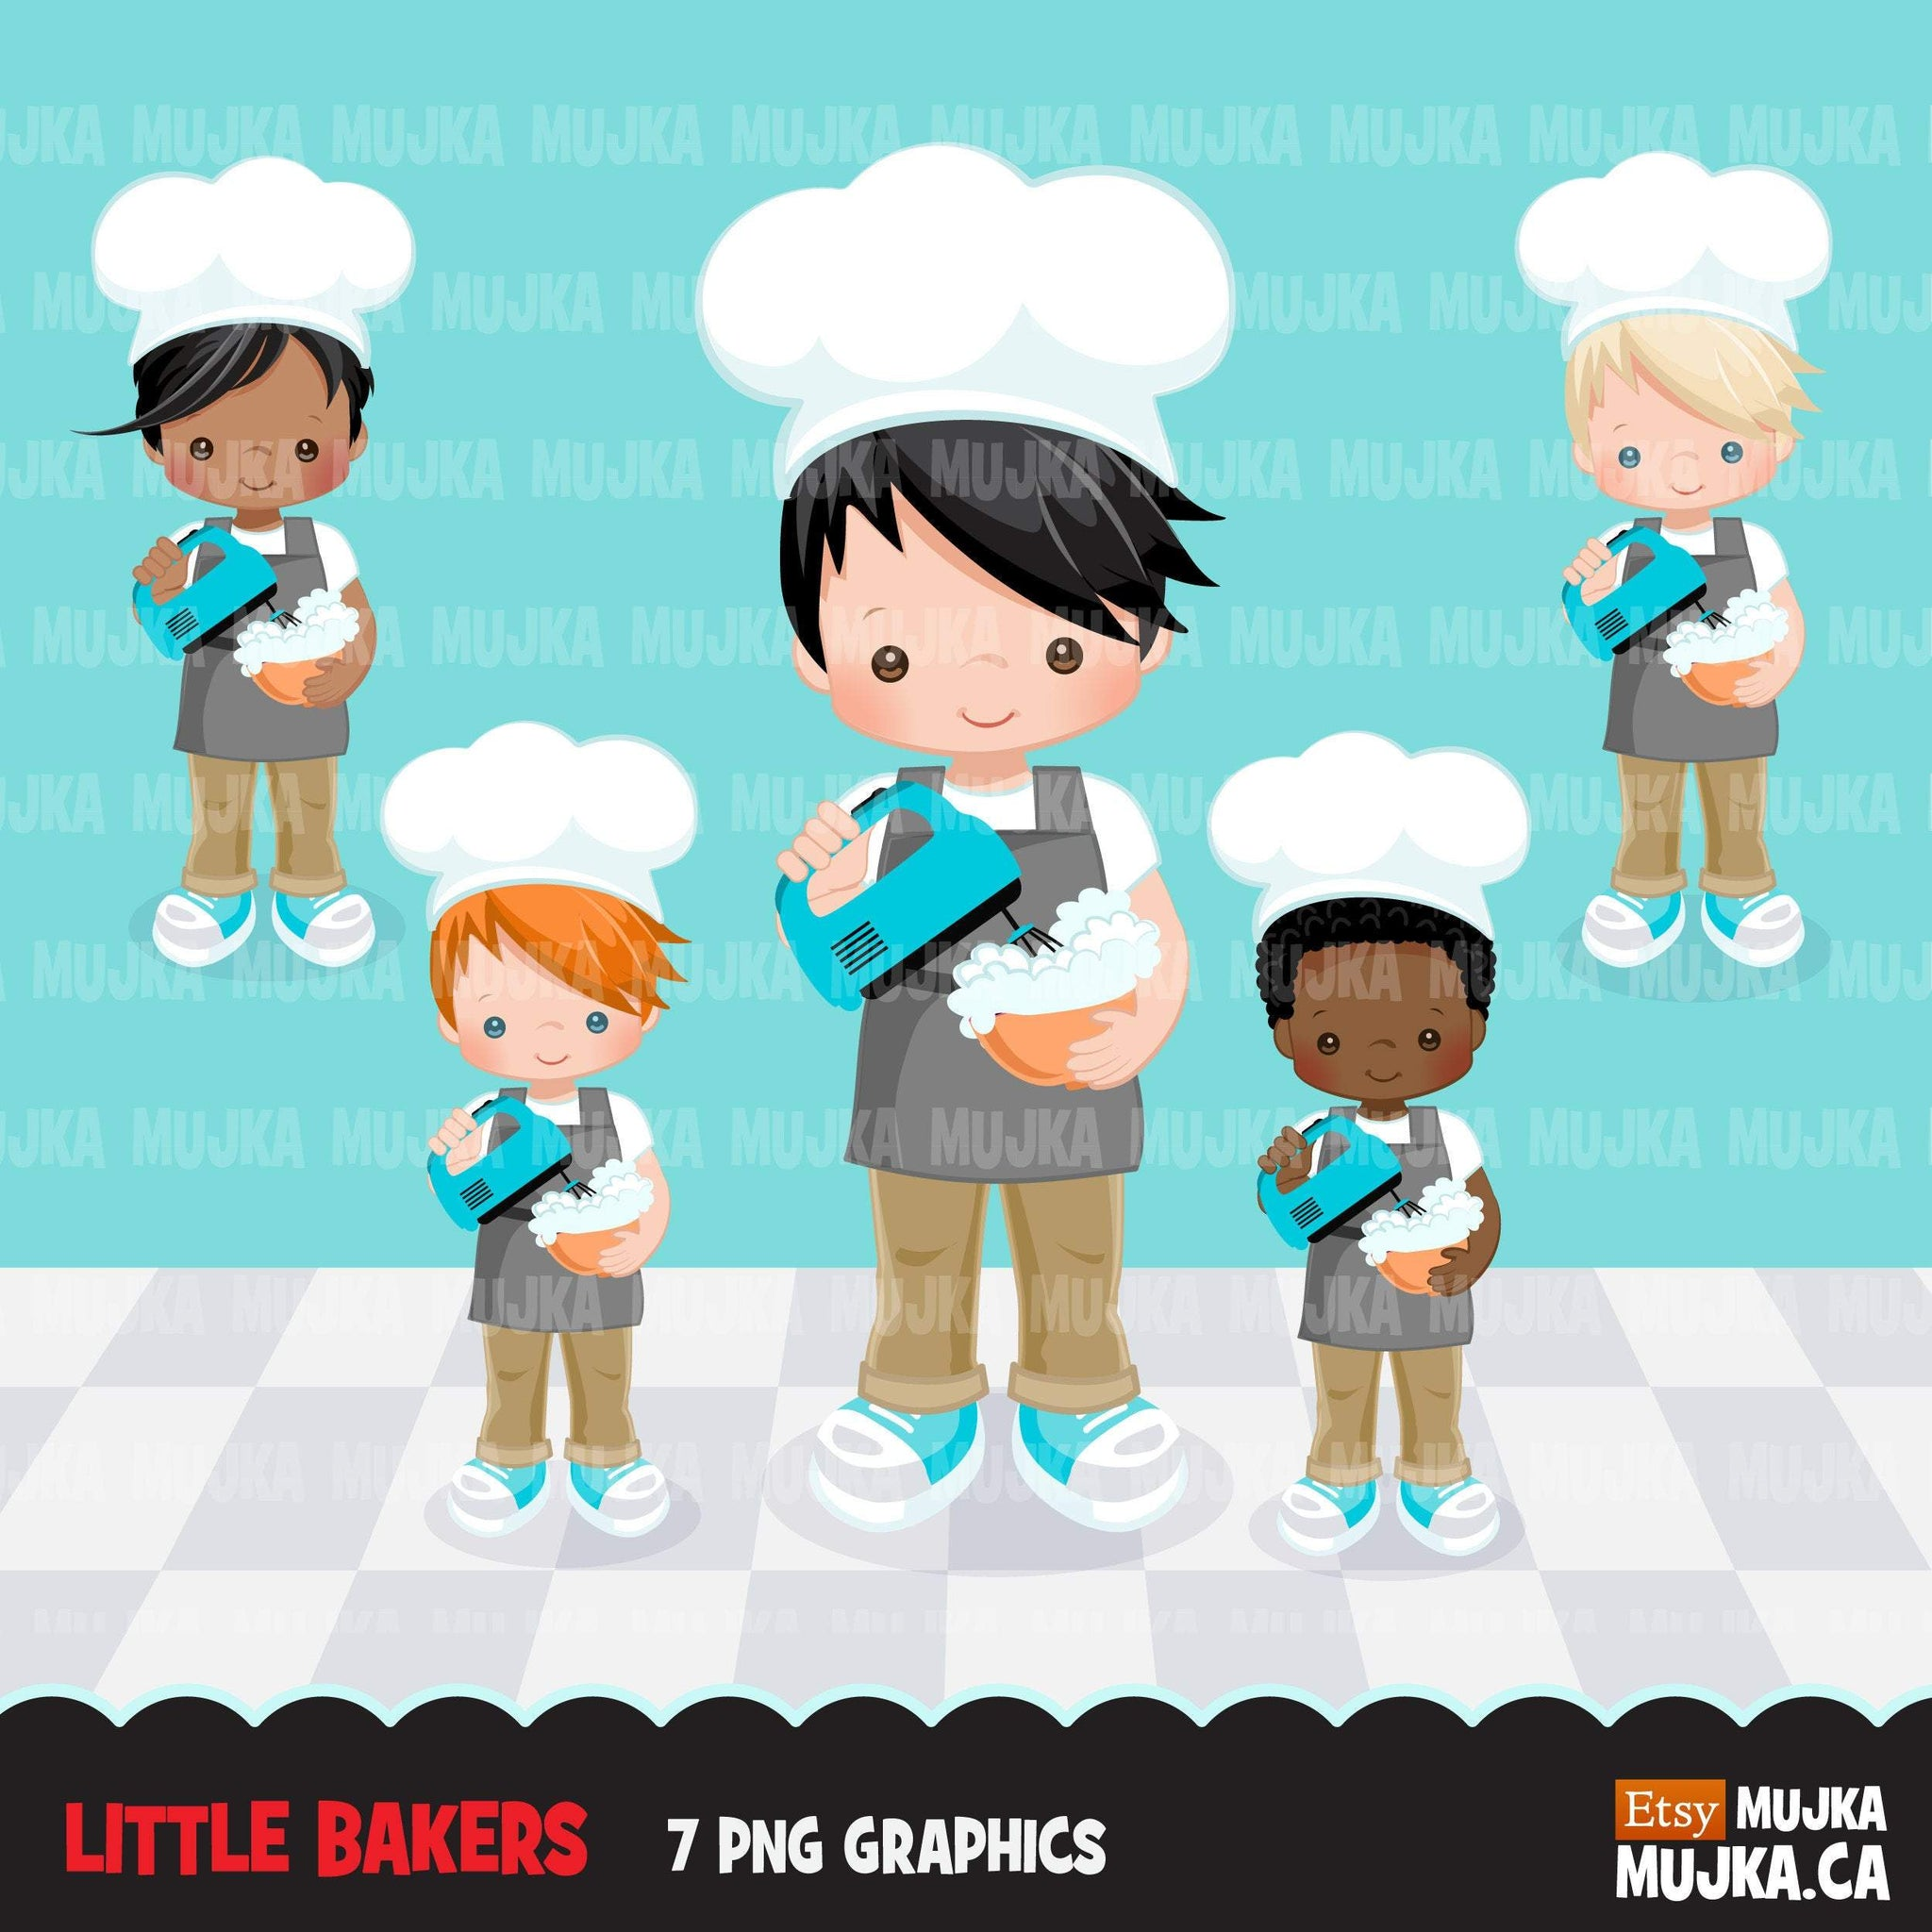 Baking Clipart, Cute baker boy characters, kitchen chores, baking party, cake pastry chef, cookie graphics, baking fun clip art